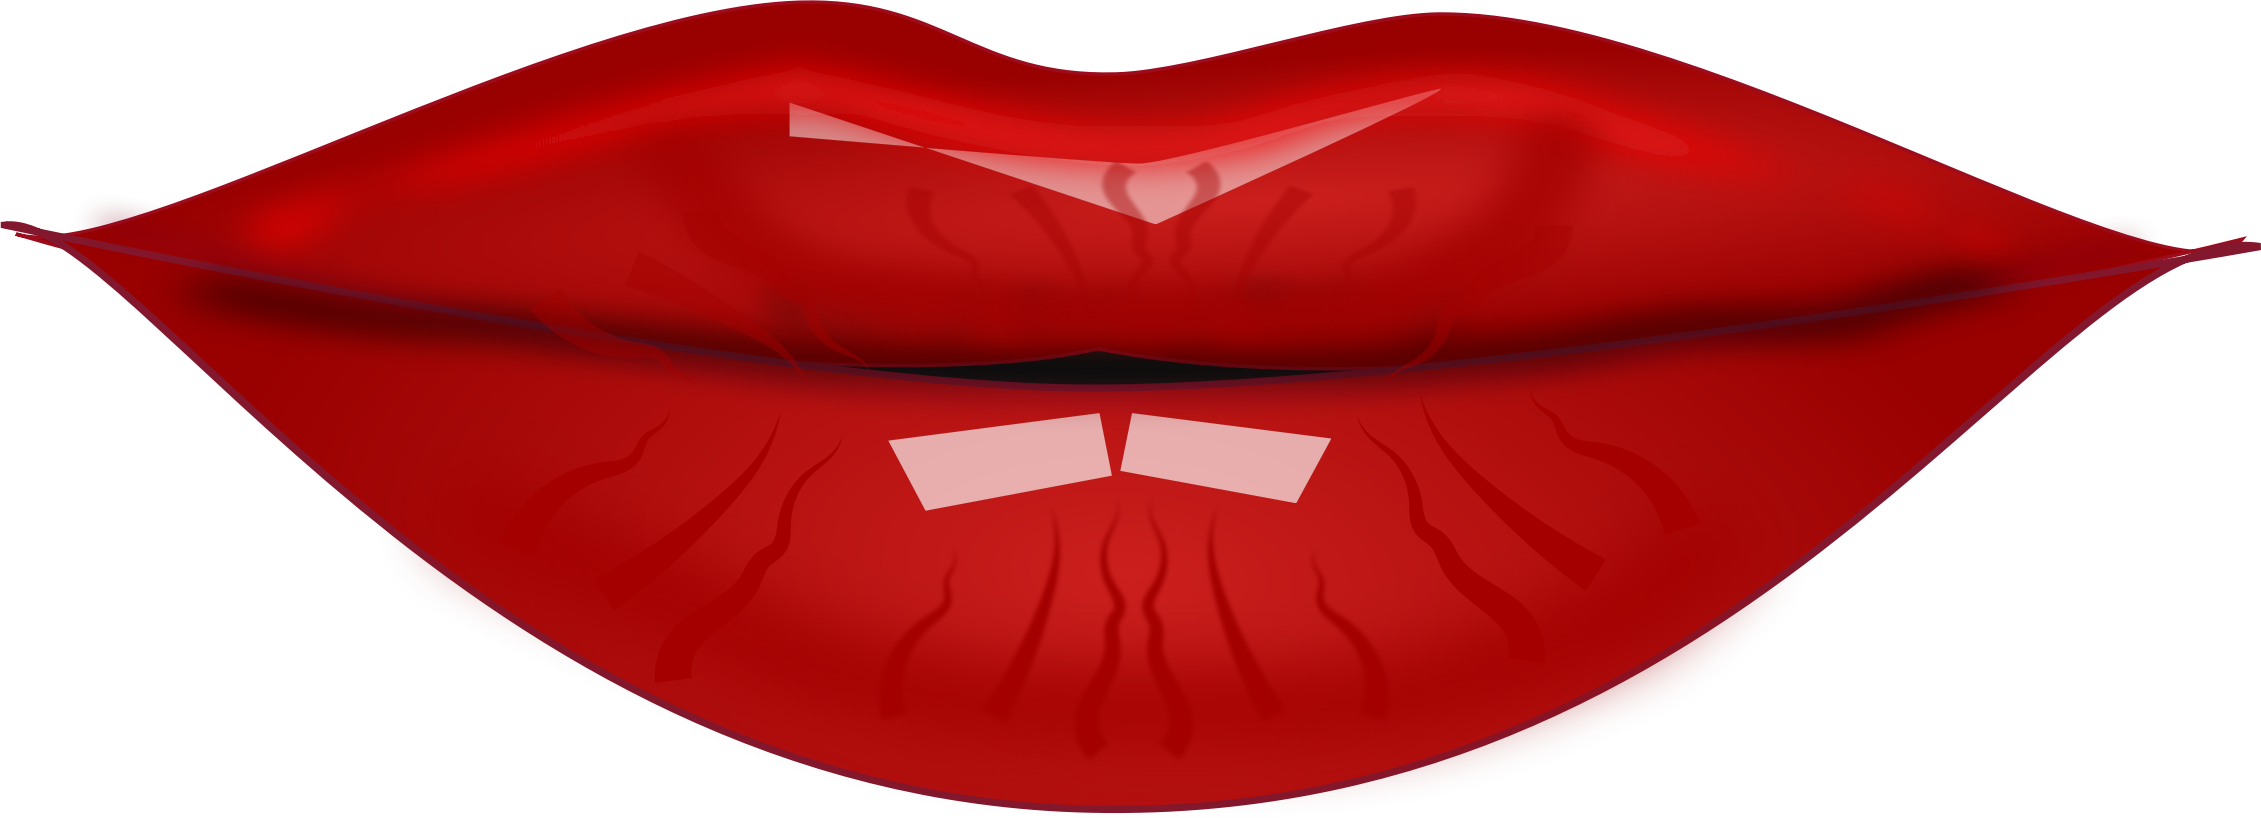 Png transparent images all. Lady clipart lips